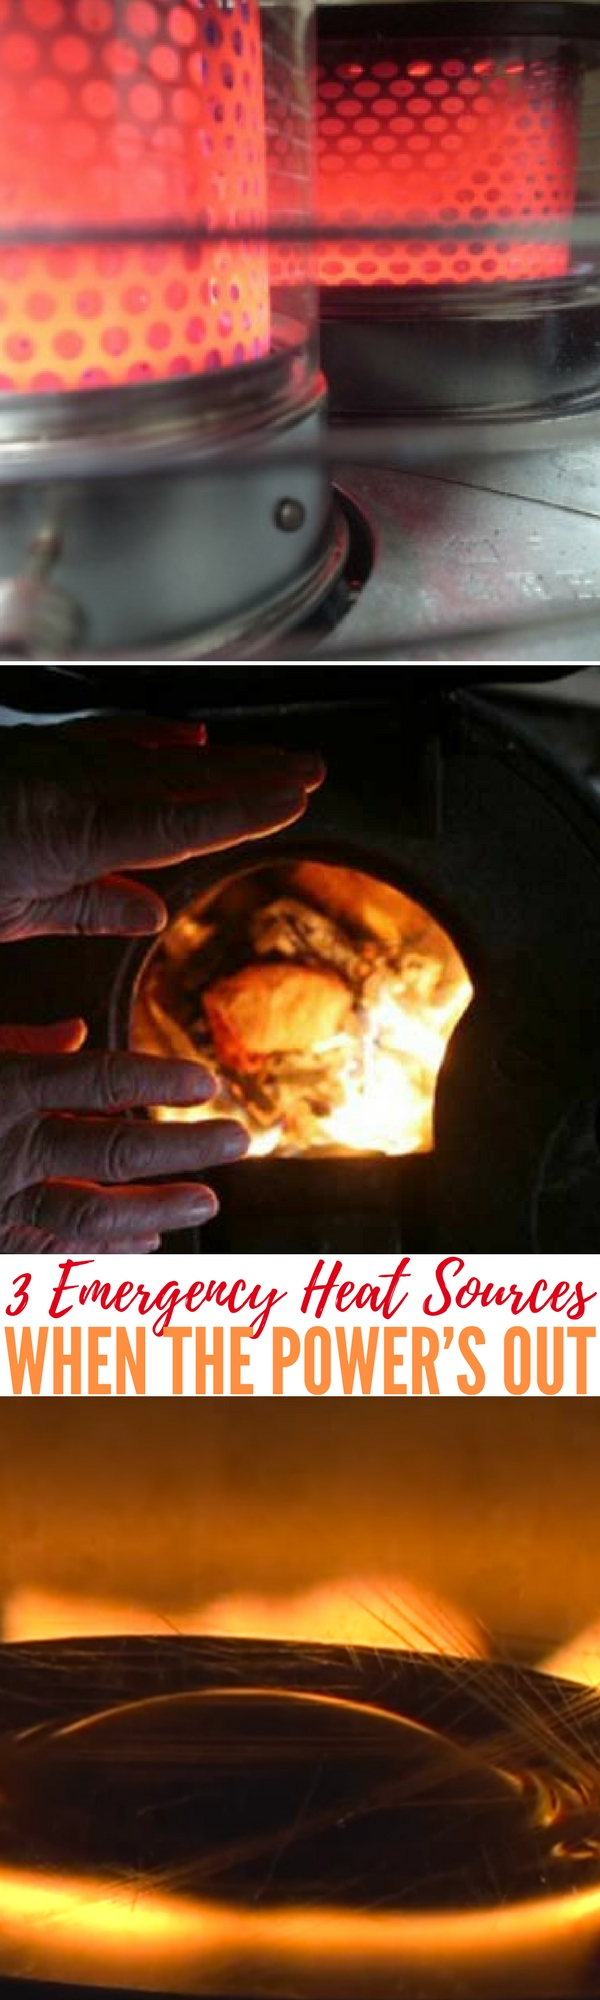 Heat Sources For Homes 3 emergency heat sources when the power's out